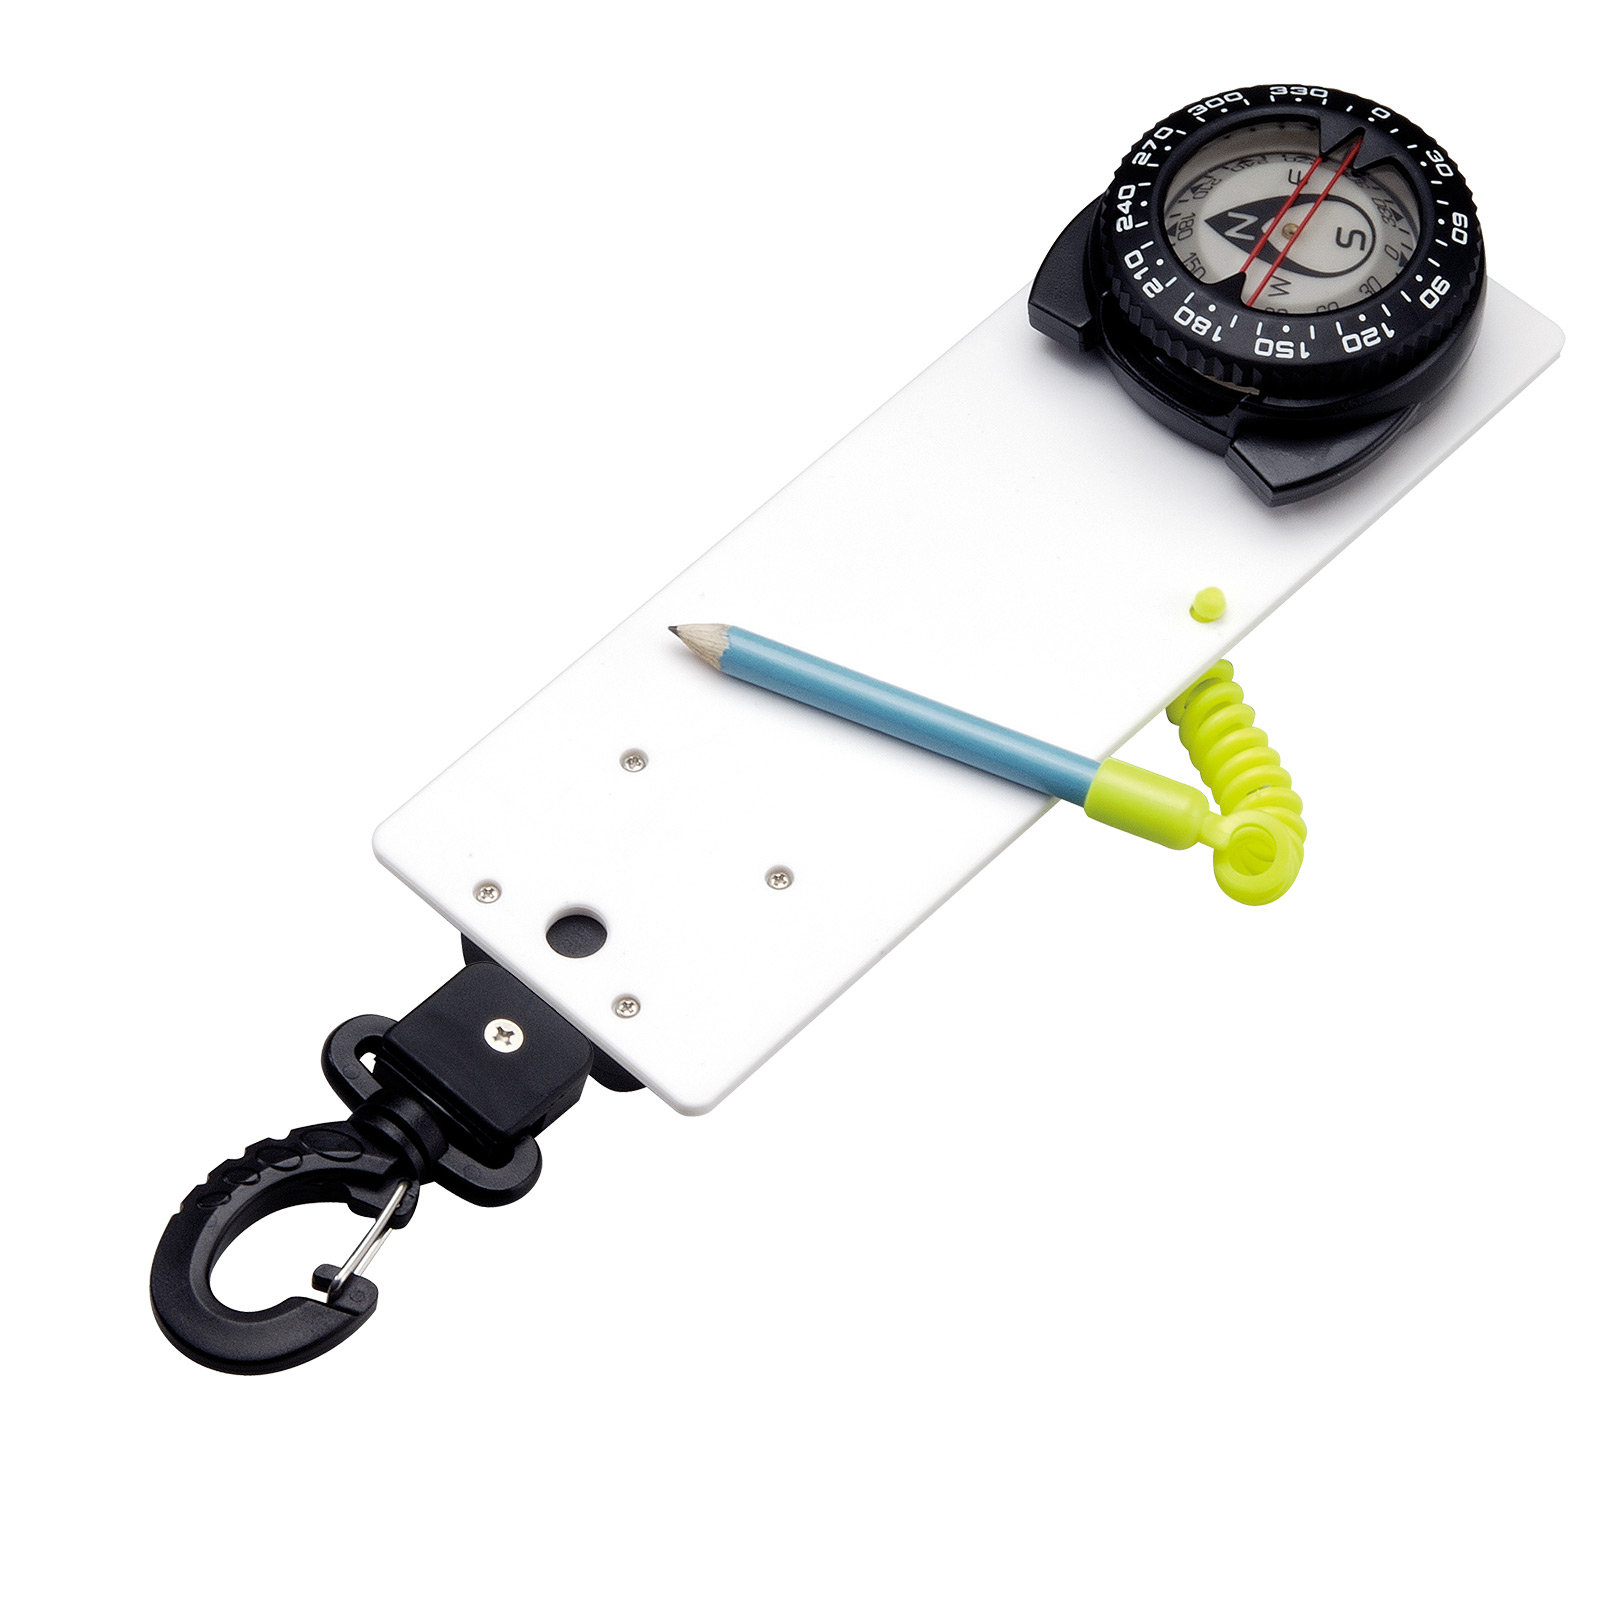 Retractable Lanyard Underwater Slate with Compass